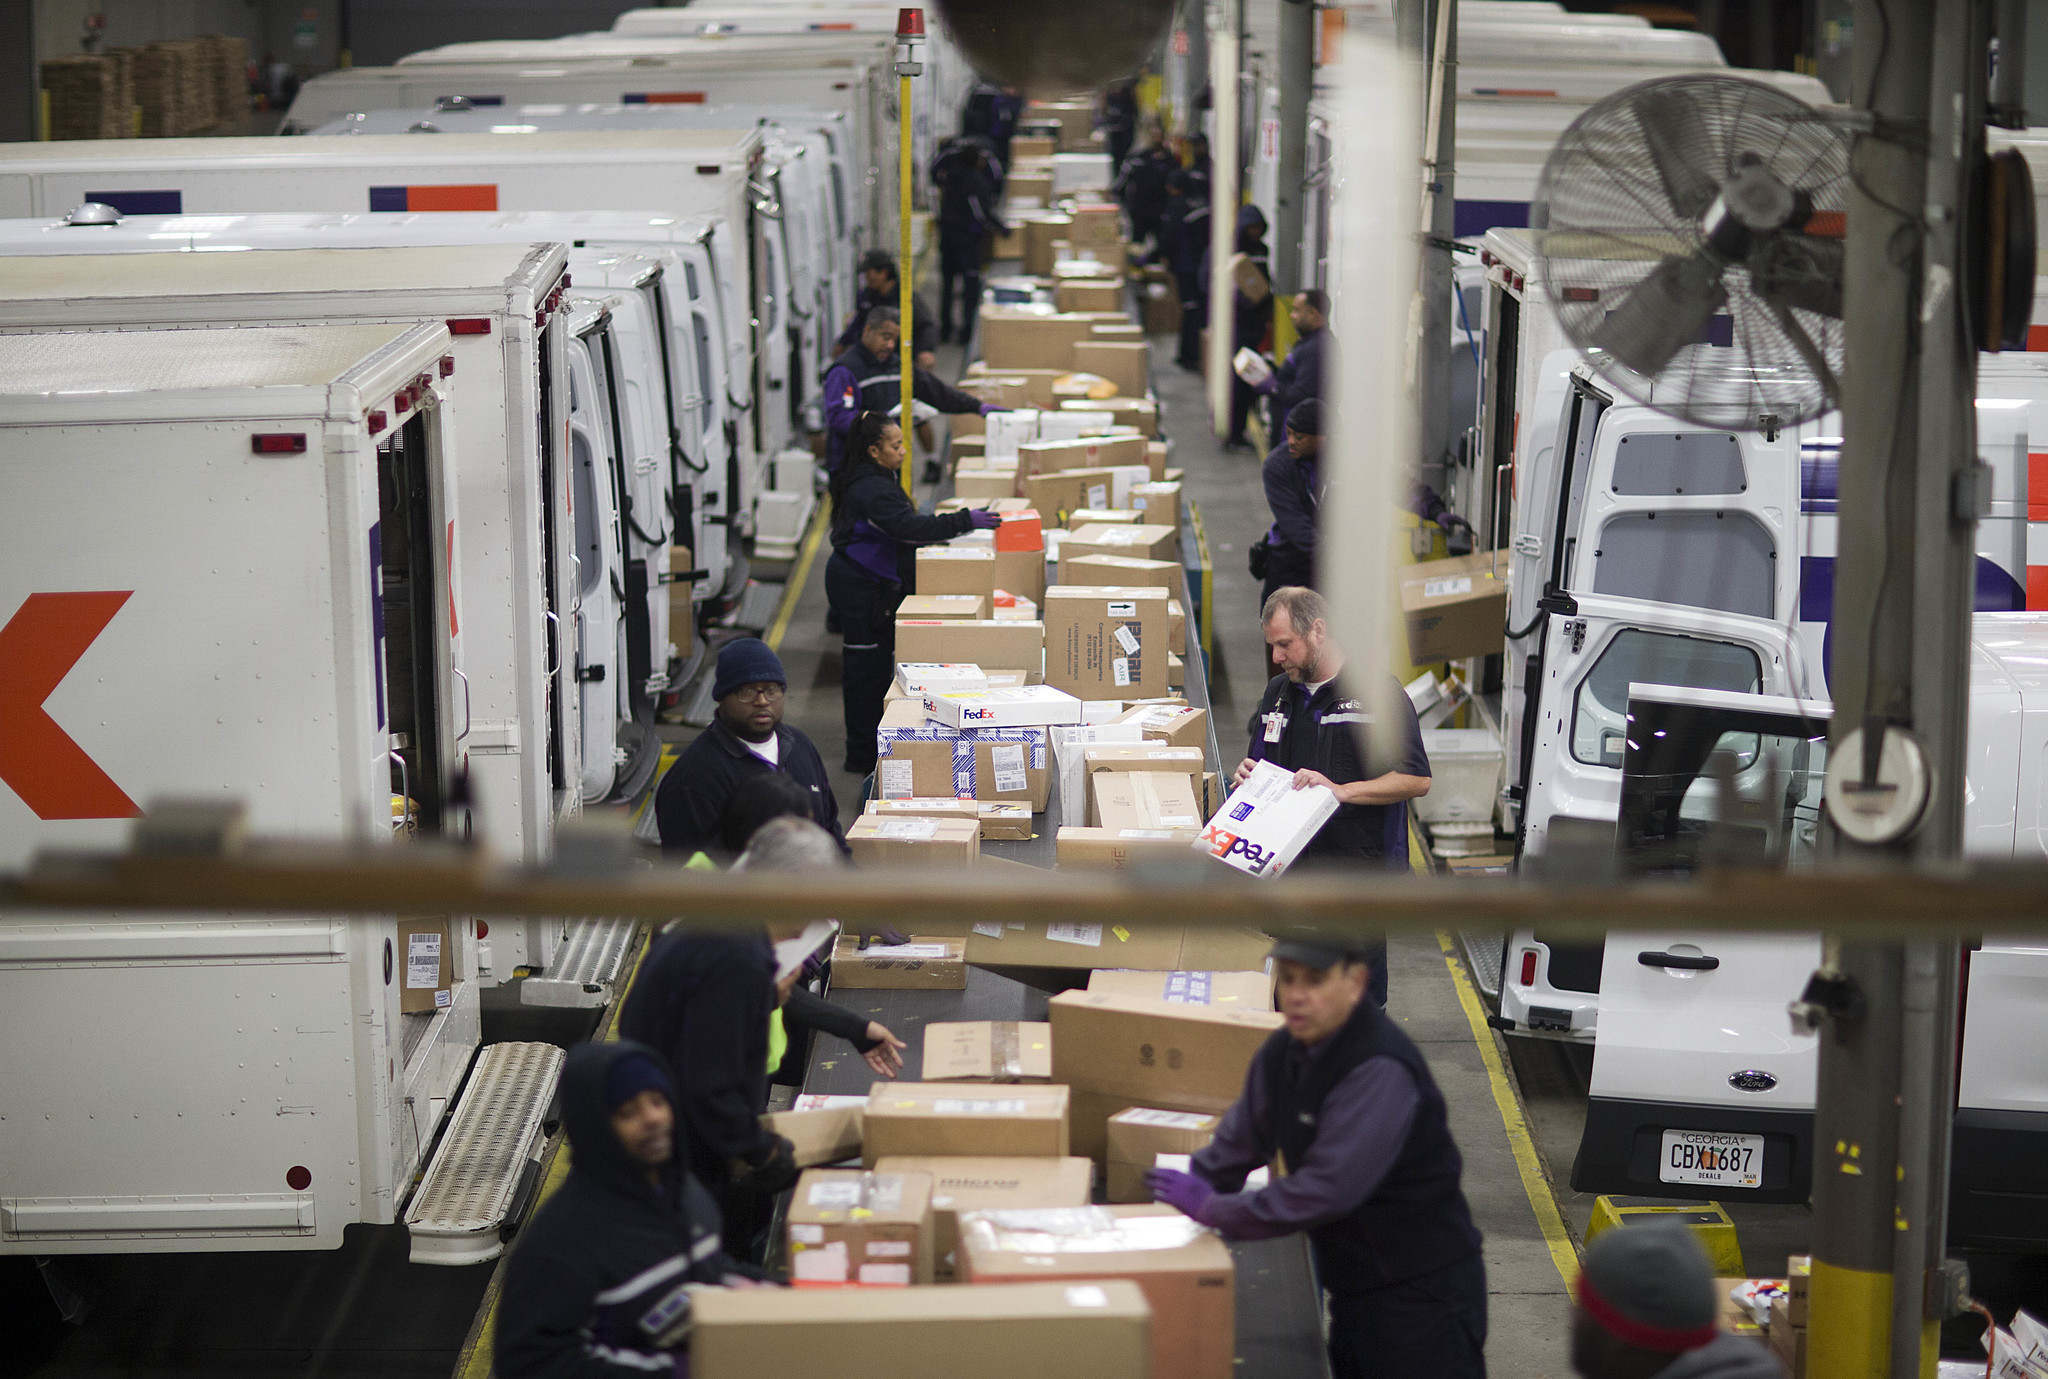 The shipping industry is poised for massive upheaval can fedex weather the storm la times